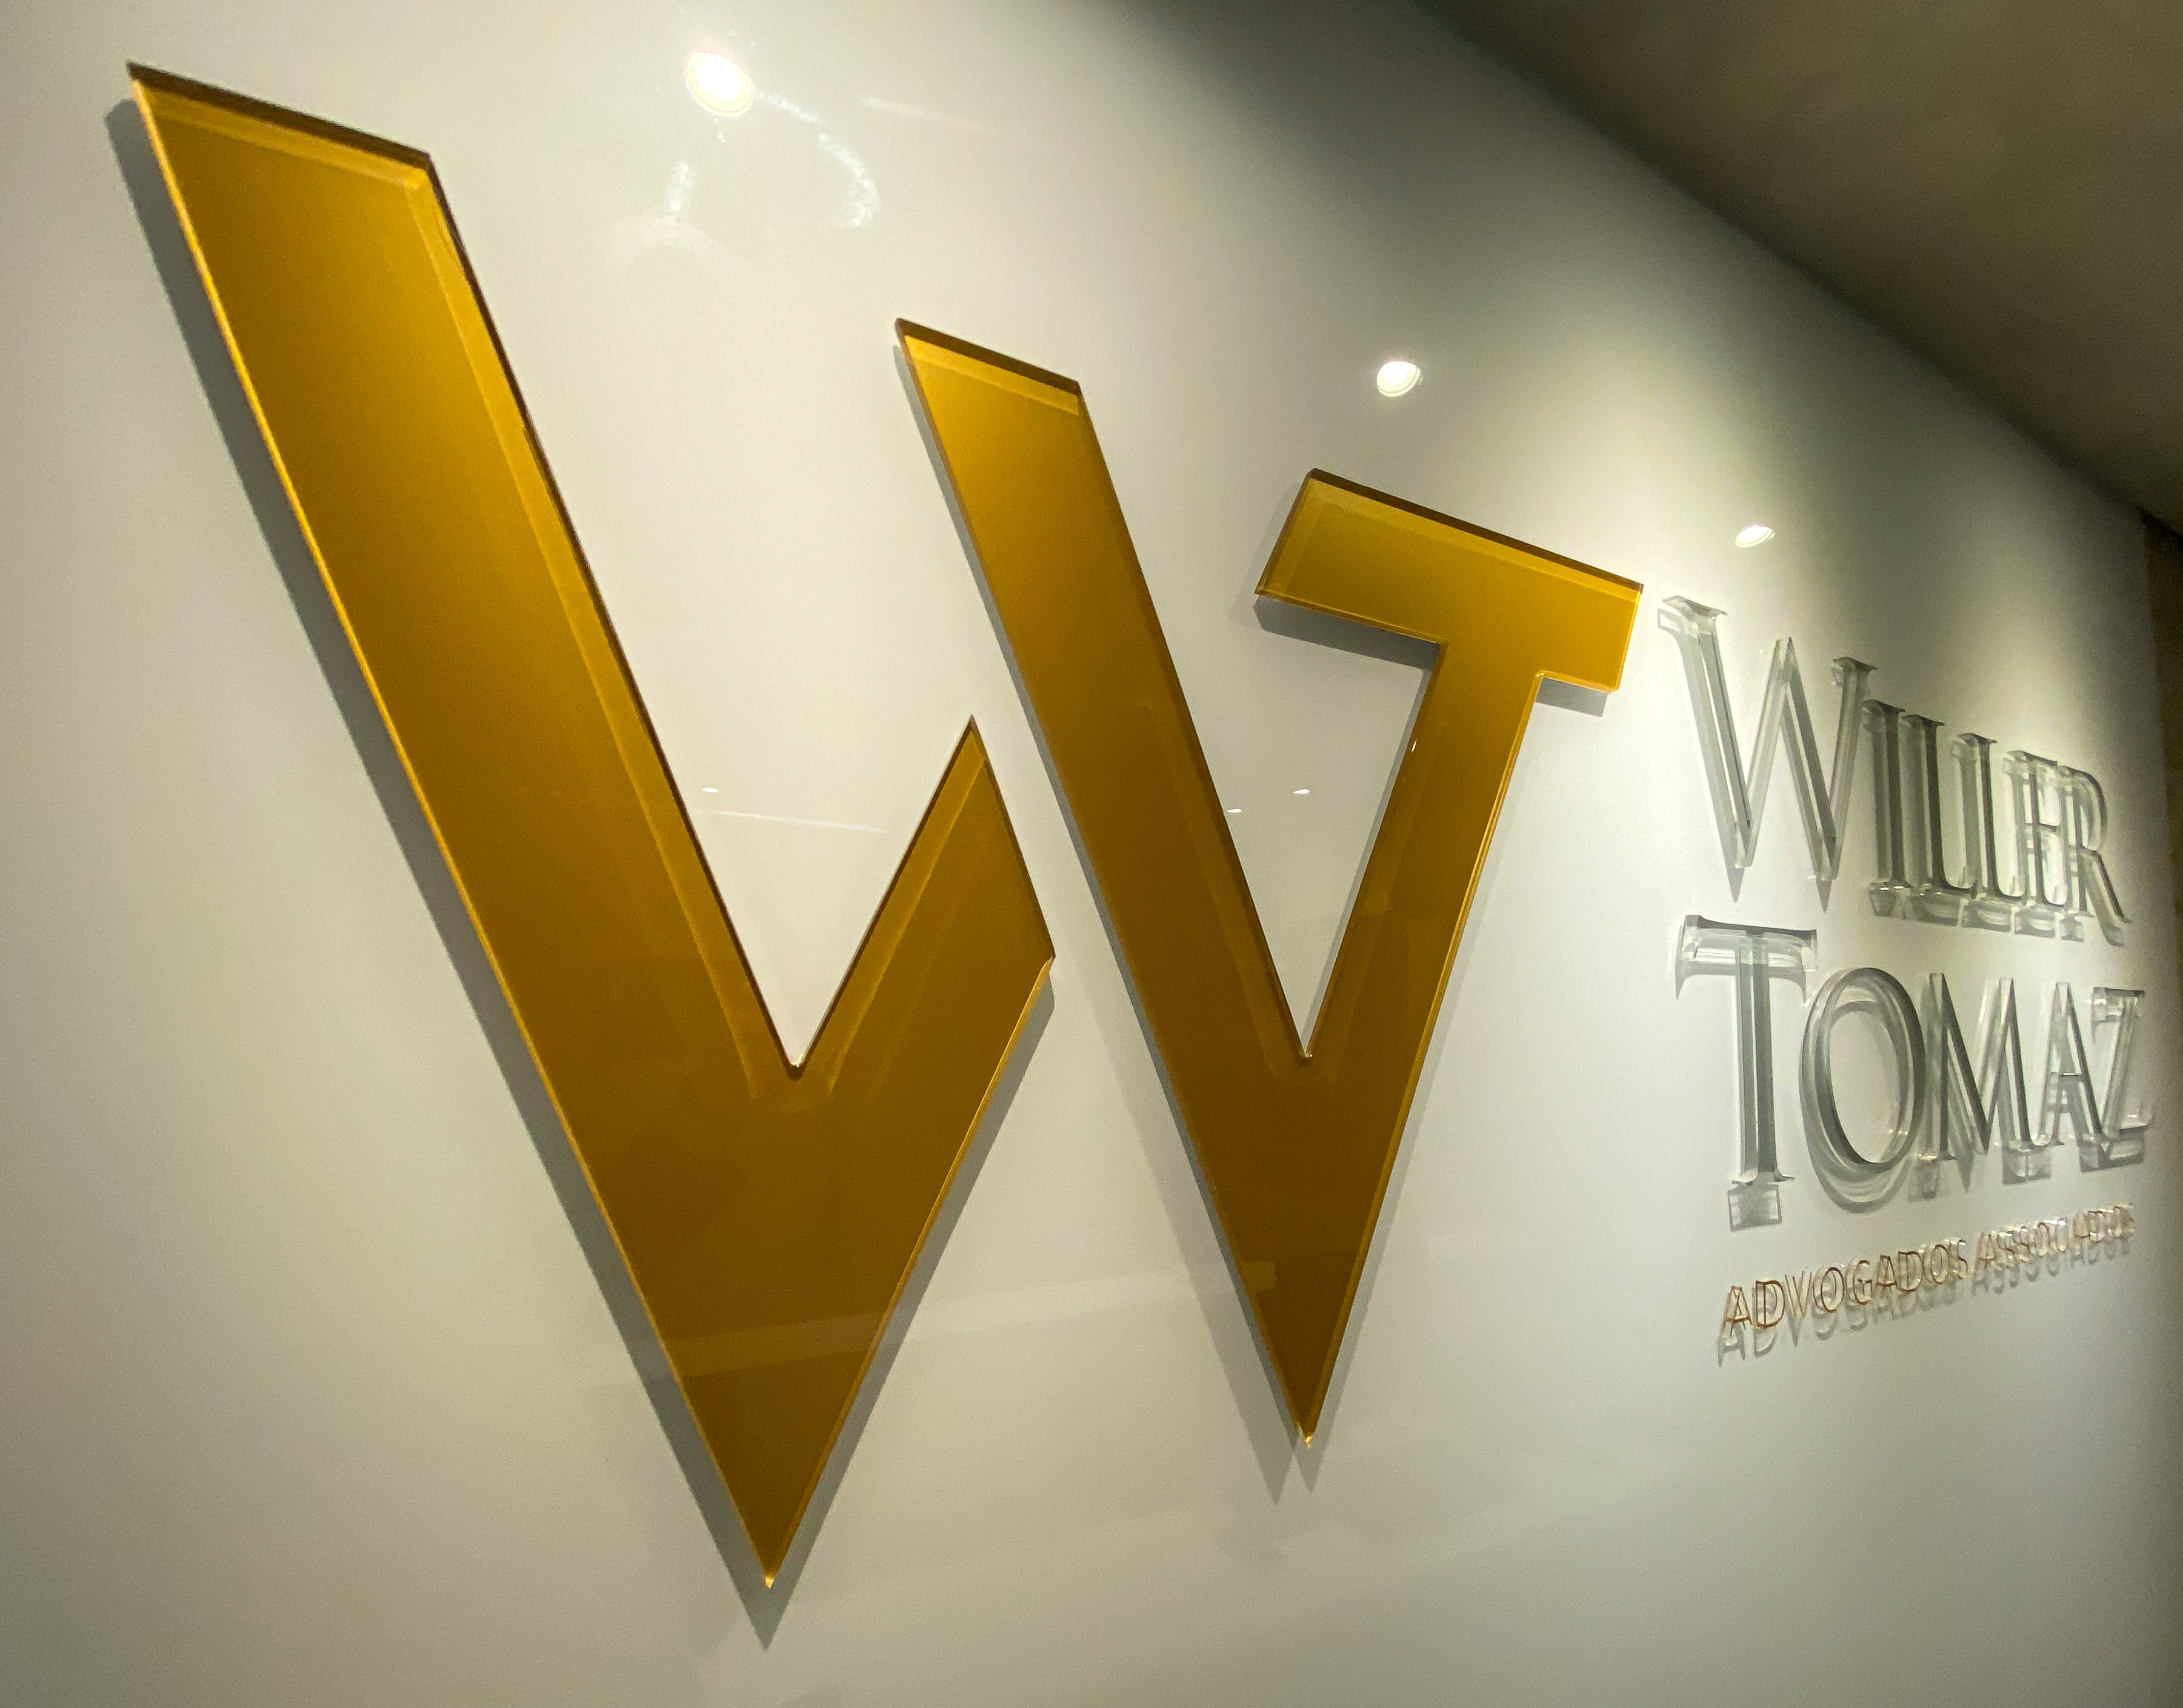 willer tomaz internas3144-min